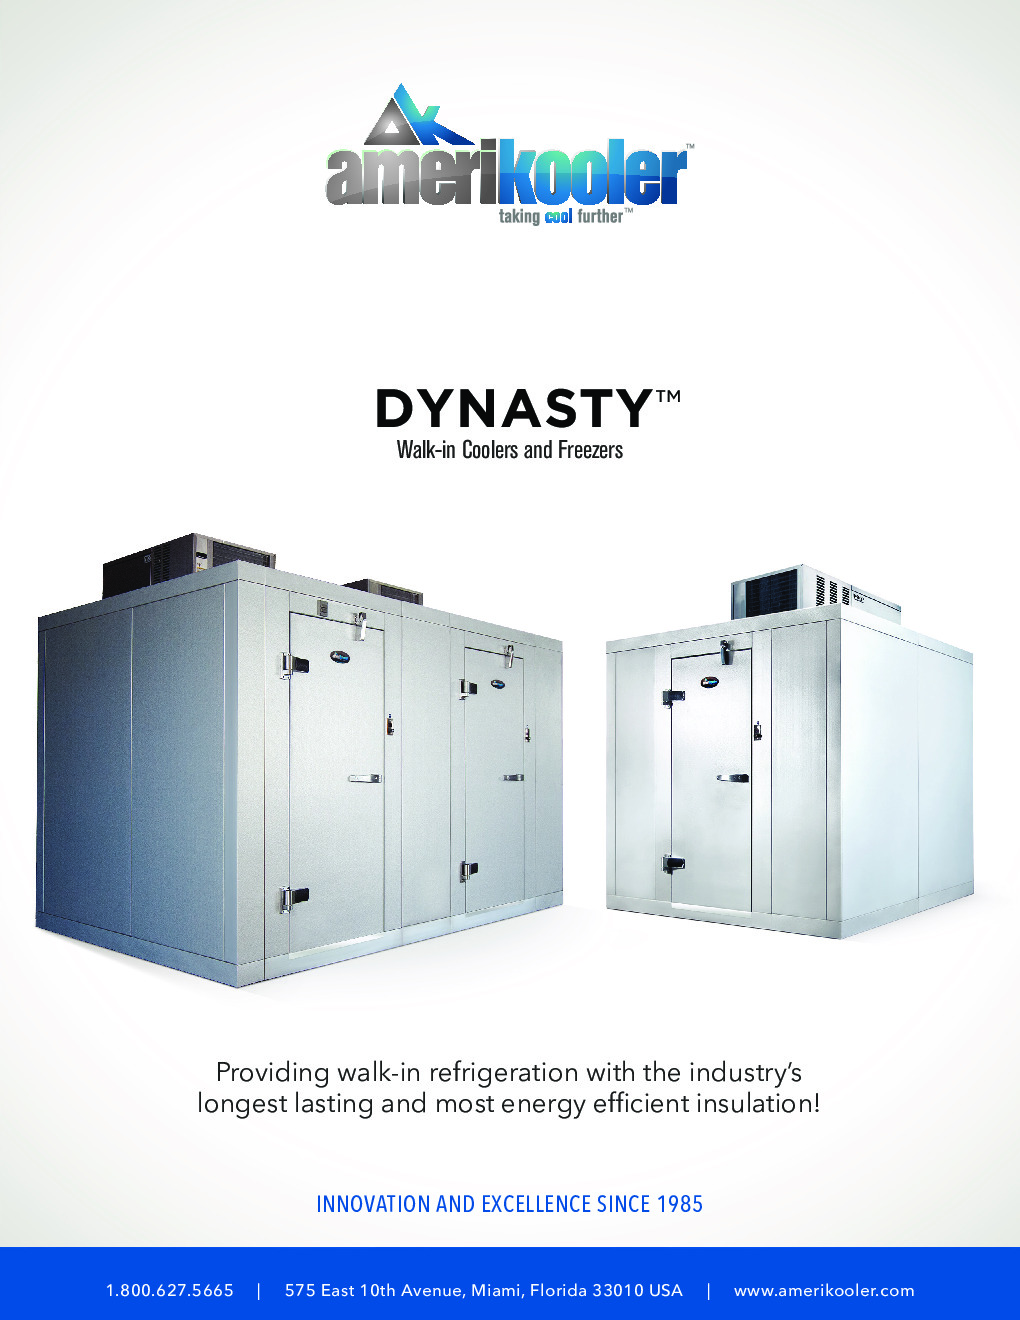 AmeriKooler DW101377N-6/7-SC 10' X 13' Walk-In Cooler, 7' L Cooler without Floor and 6' L Freezer, Self Contained